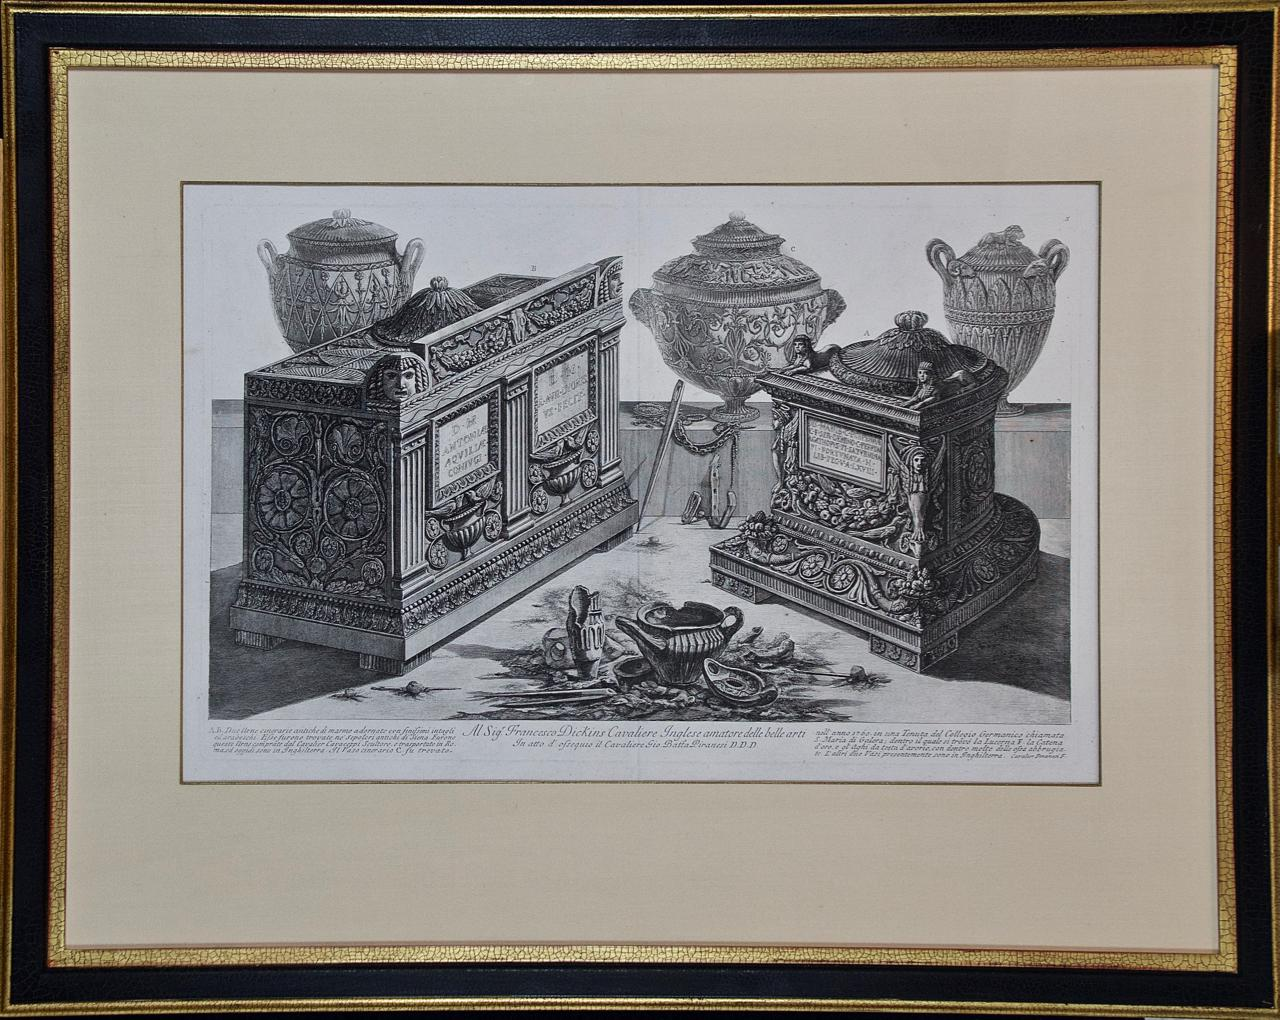 """""""Due Urne Cinerarie"""" Piranesi Etching of Ancient Roman Architectural Objects"""